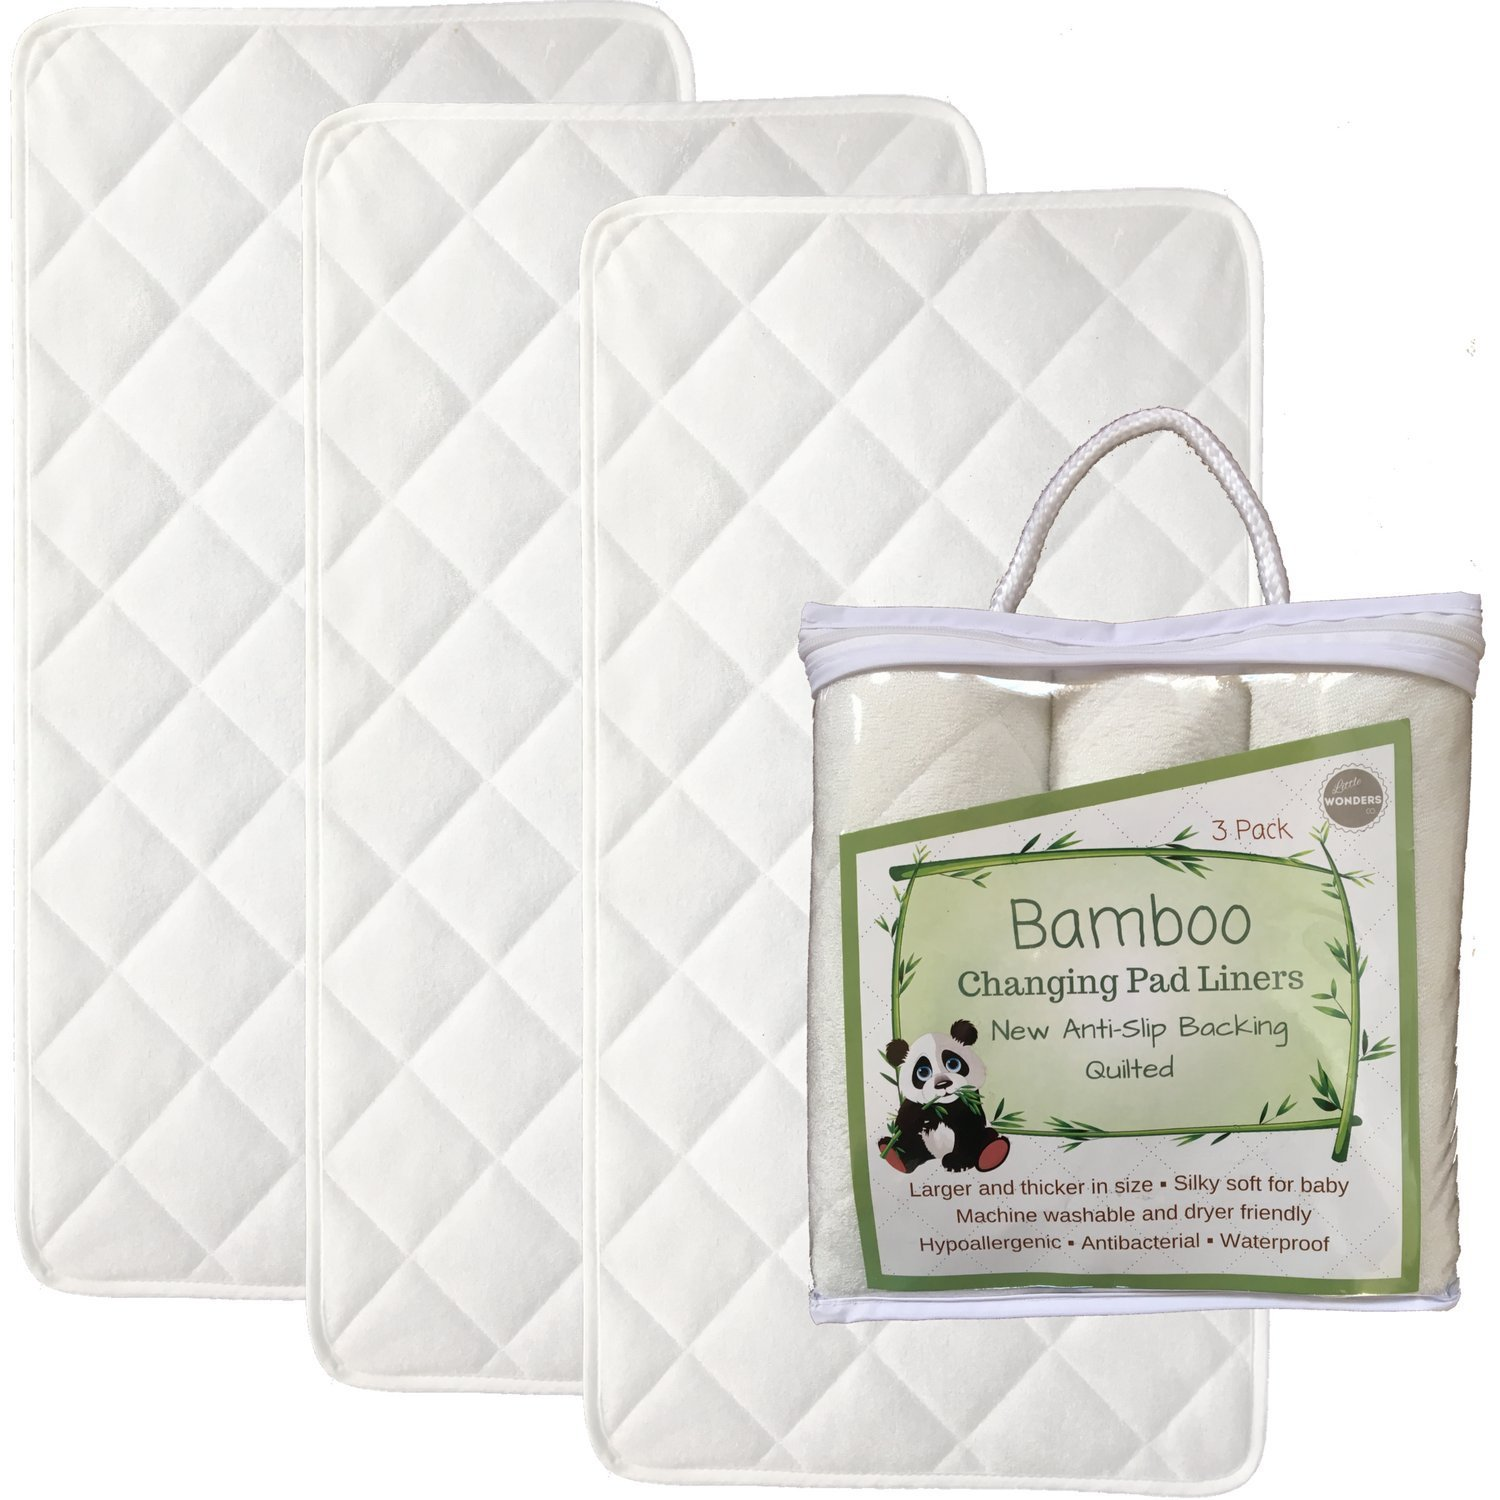 NEW ANTI SLIP - Larger - 27'' x 14'' - Bamboo Changing Pad Liners - 4 Layers - Quilted- 3 Pack - Ultra Soft - Highly Absorbent - Machine Washable, Dryer Friendly